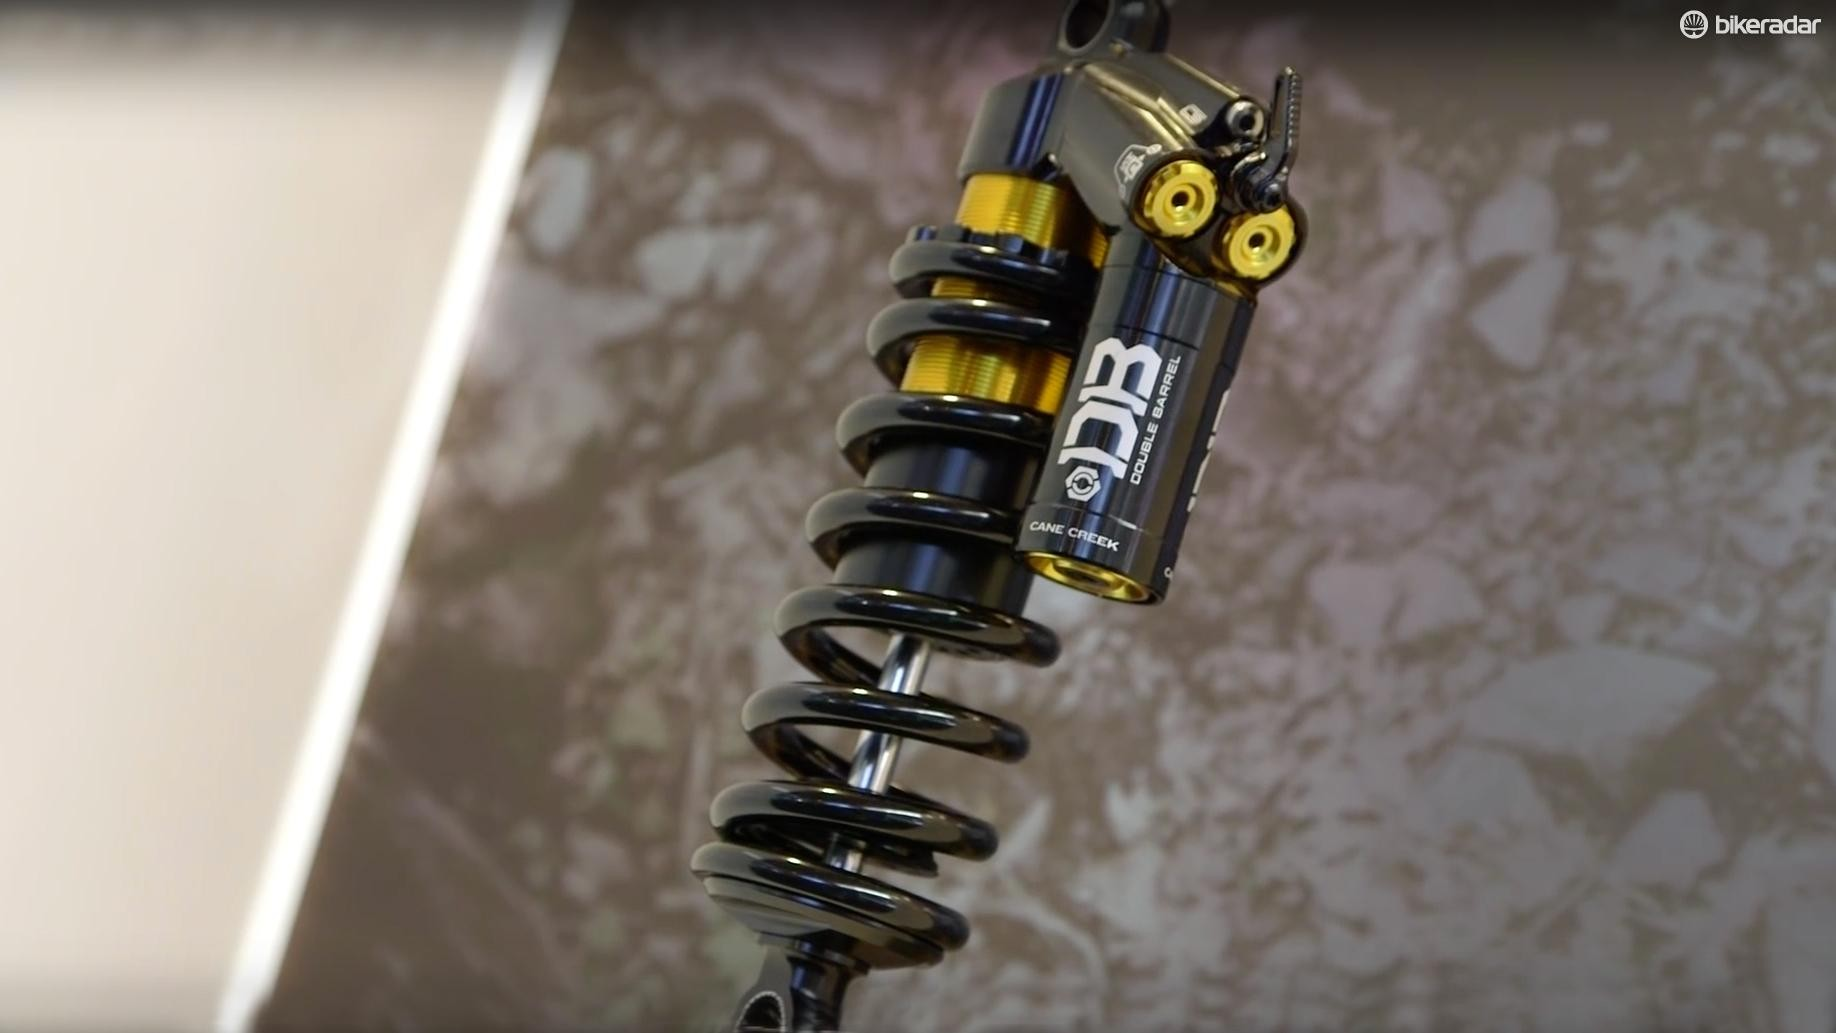 The new DB Coil CS shock from Cane Creek